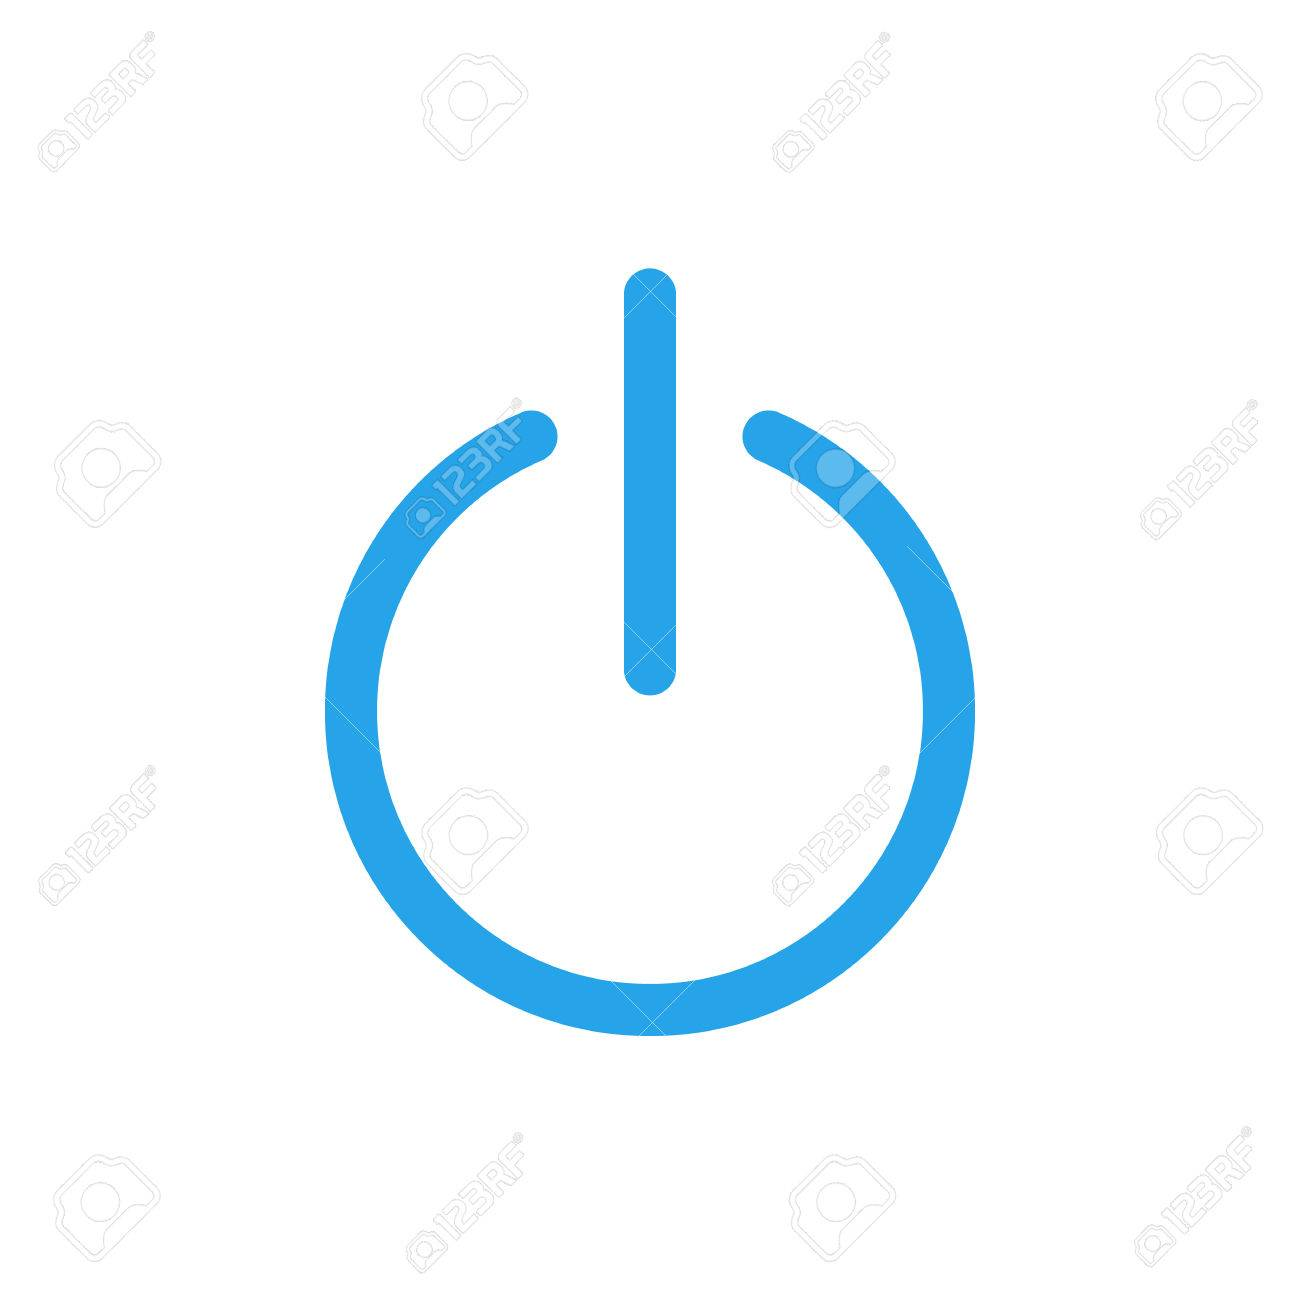 Generous toggle switch on off symbols contemporary electrical fine symbol for toggle switch images electrical and wiring biocorpaavc Images